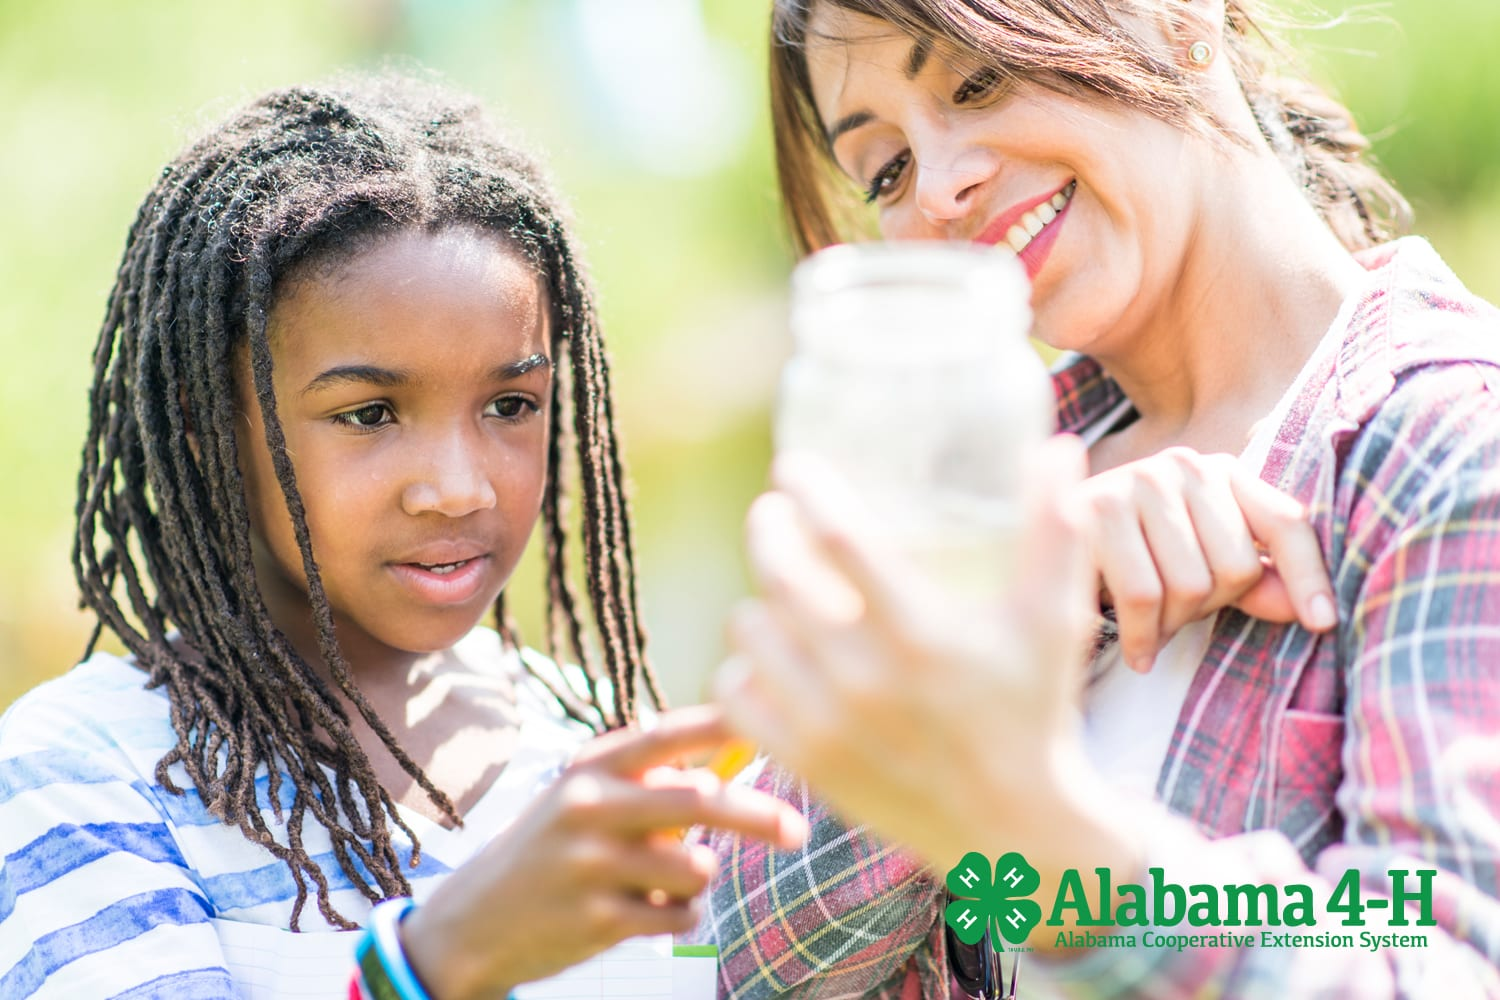 Alabama 4-H volunteer outdoors with 4-H member monitoring water quality